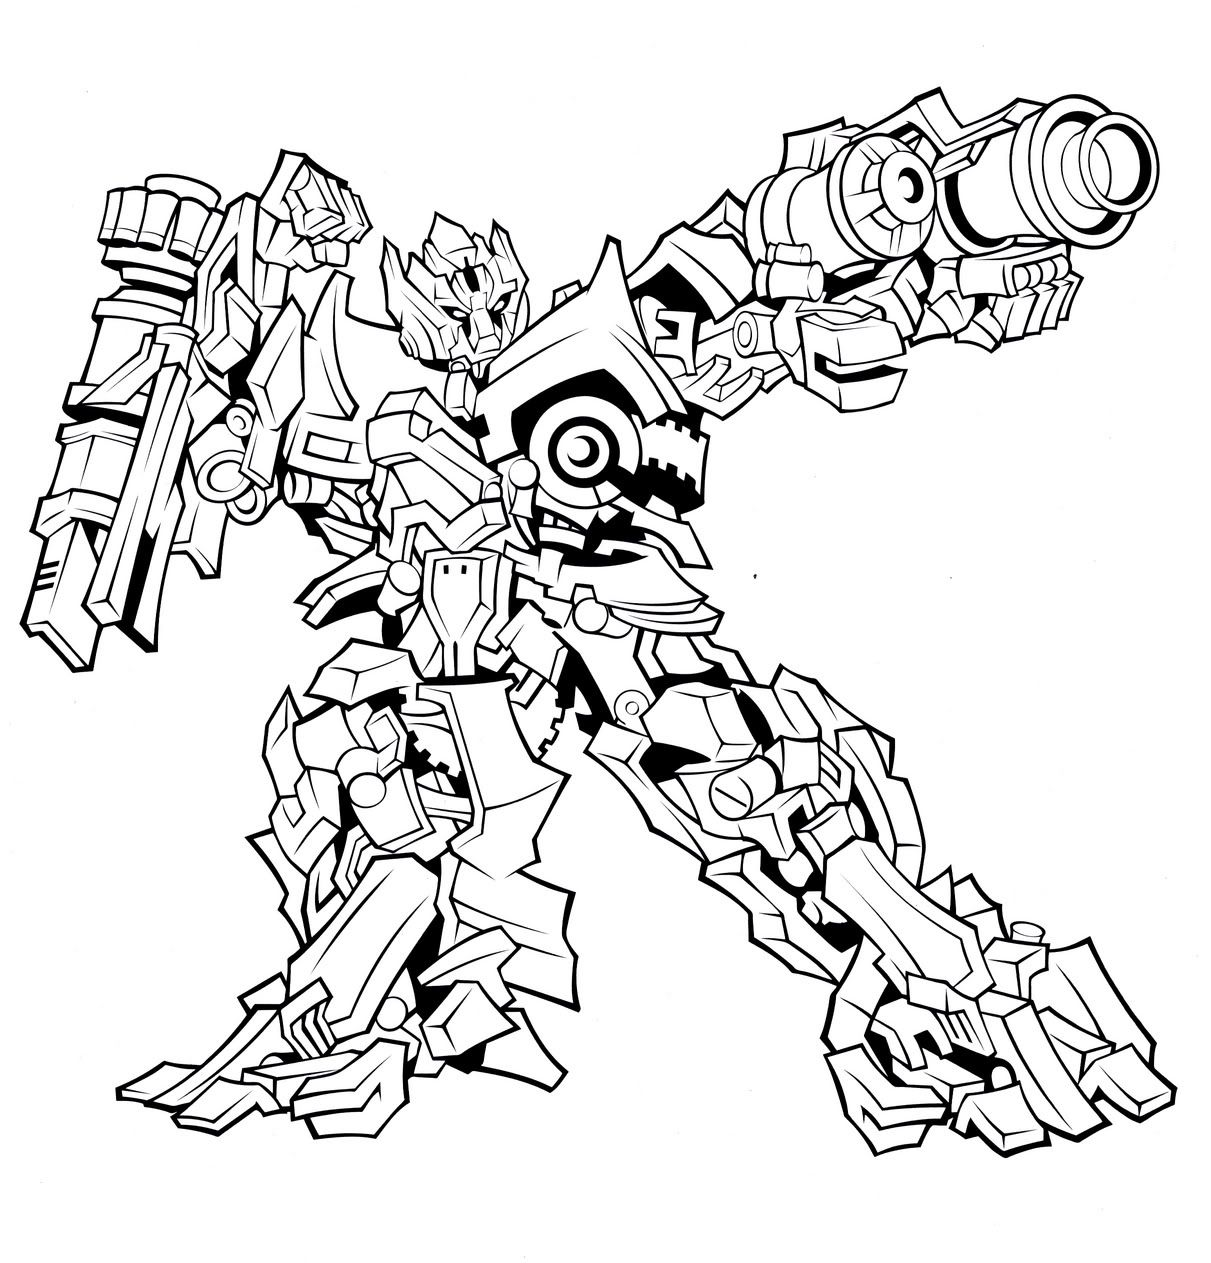 wwwbestcoloringpagesforkidscom wp content uploads 2013 06 coloring page transformersjpg kids coloring pages pinterest - Transformer Coloring Pages